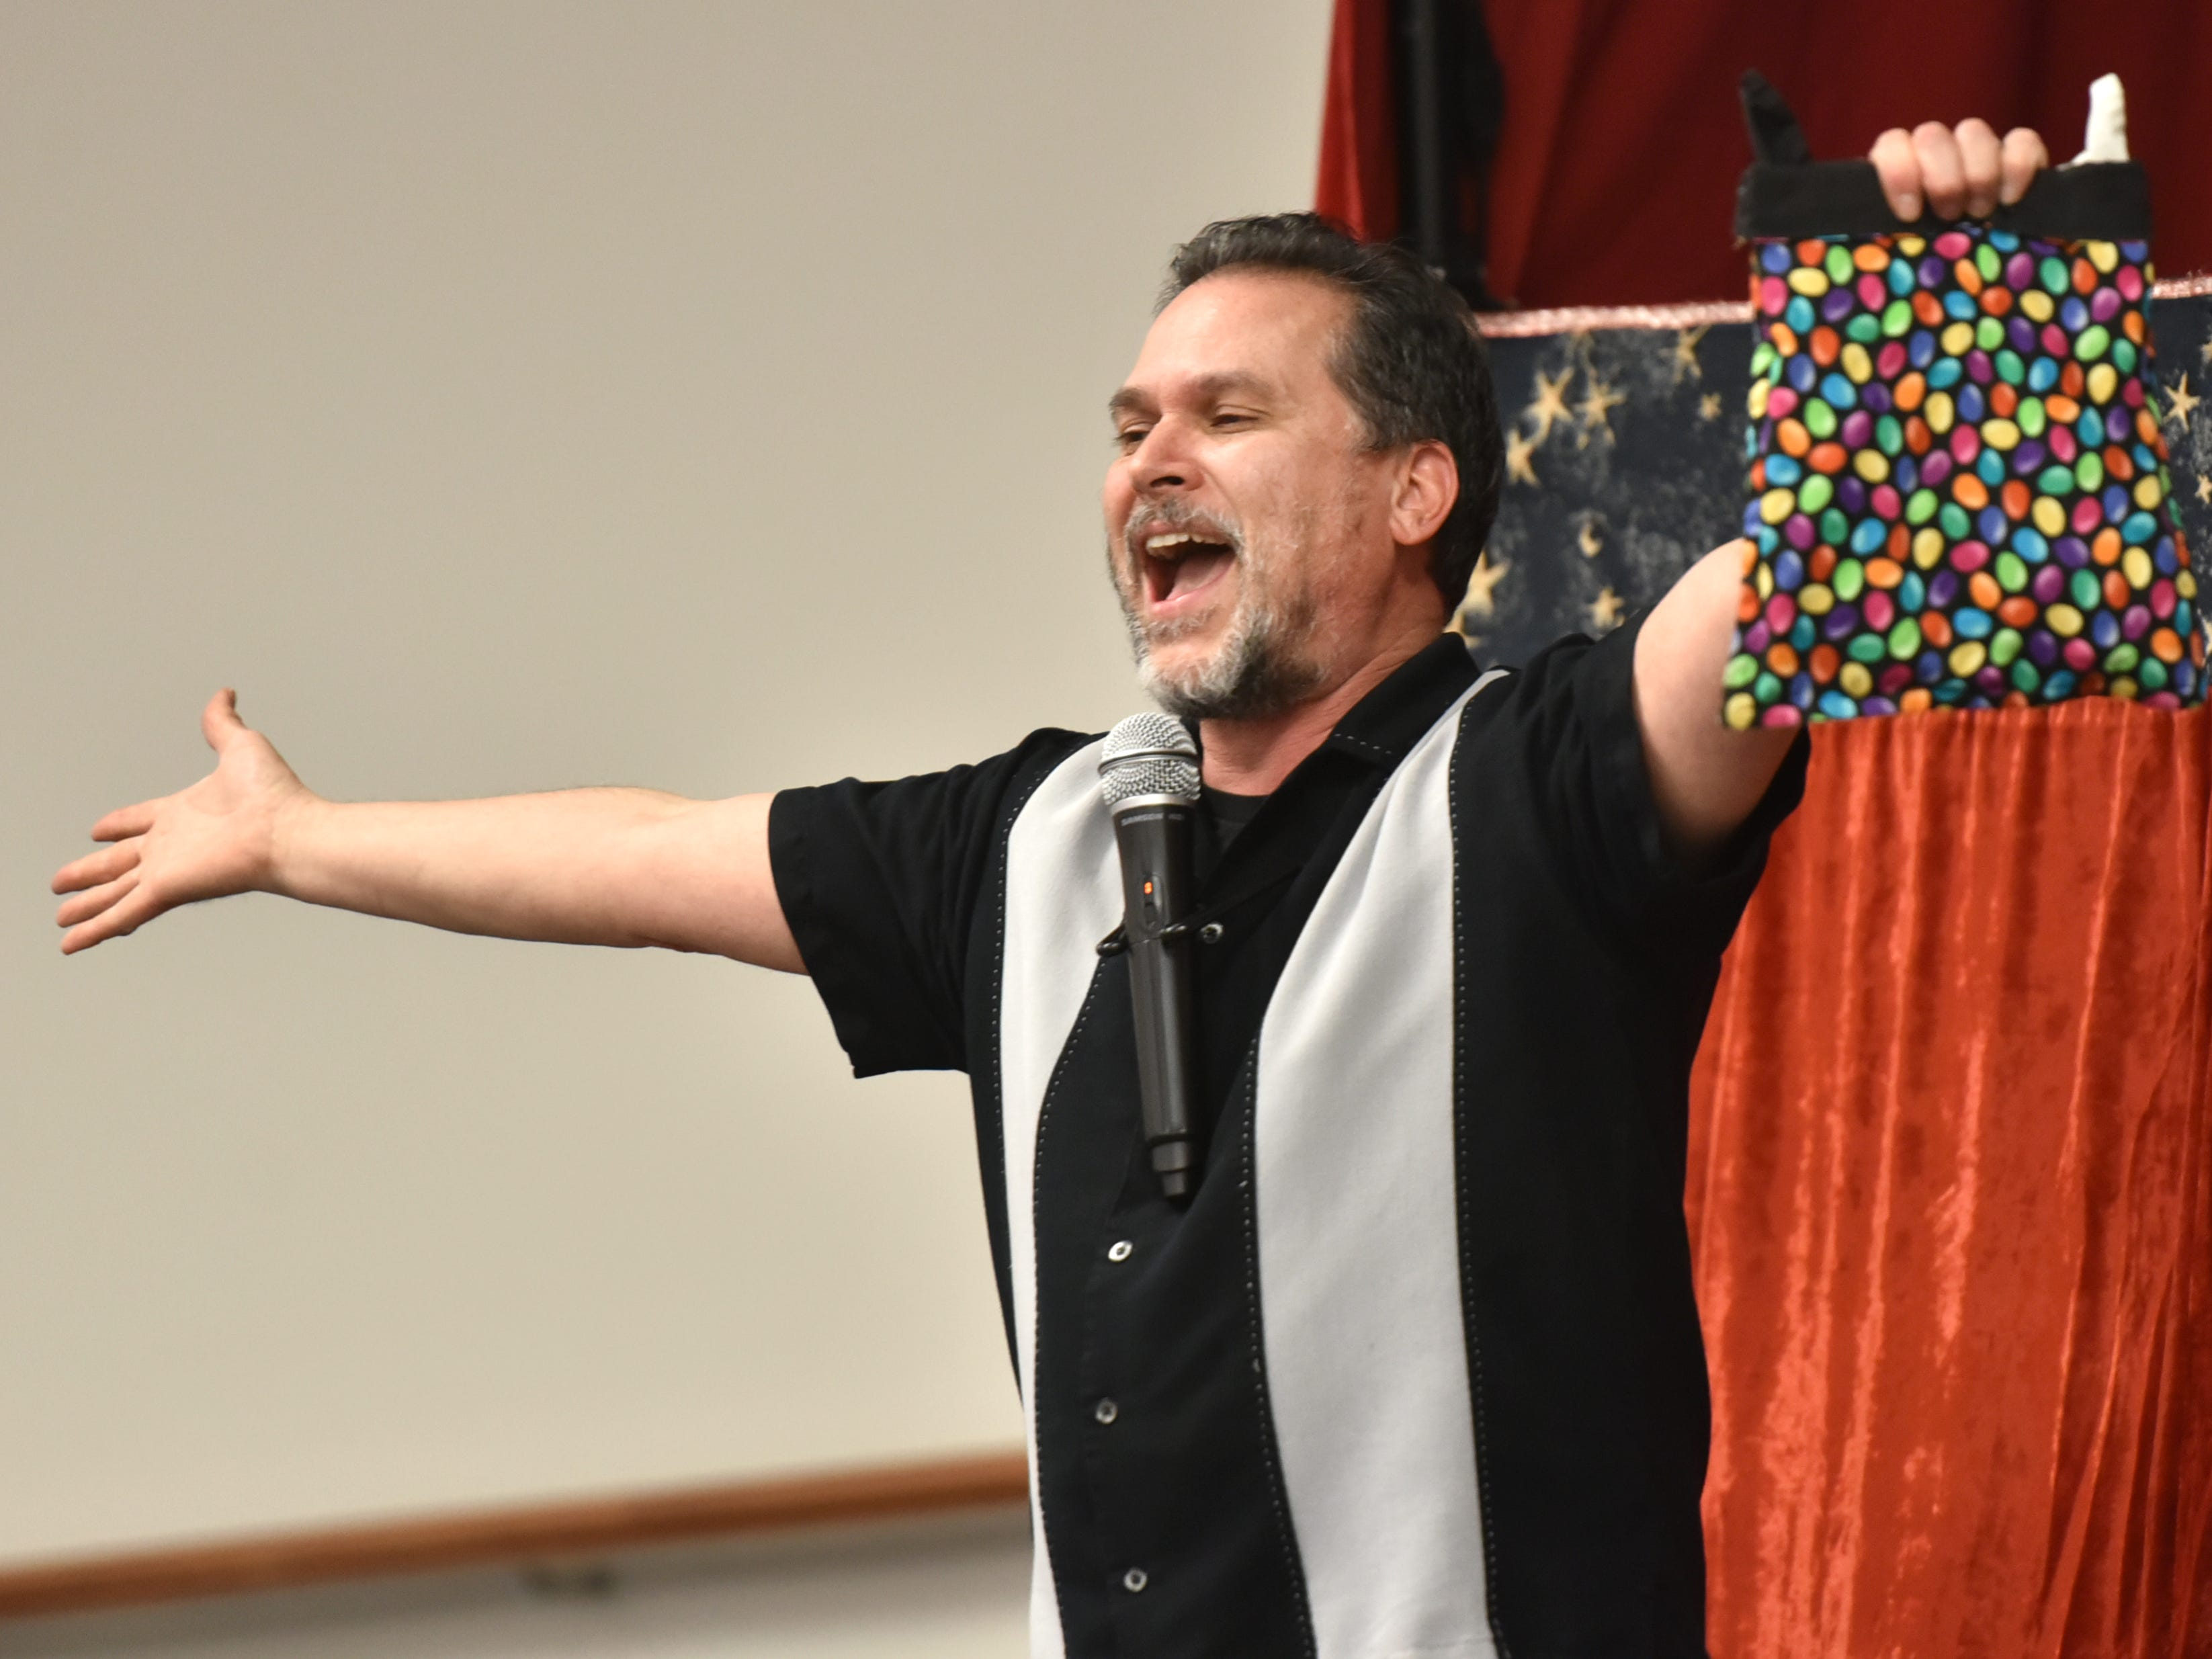 """Eugene Clark does a """"tah-dah"""" move as he finishes a magic trick for his April 2 audience at the Farmington Hills Library. Clark was also there to do a puppet show called Jo-Jo Fish and the Magic Pearl."""